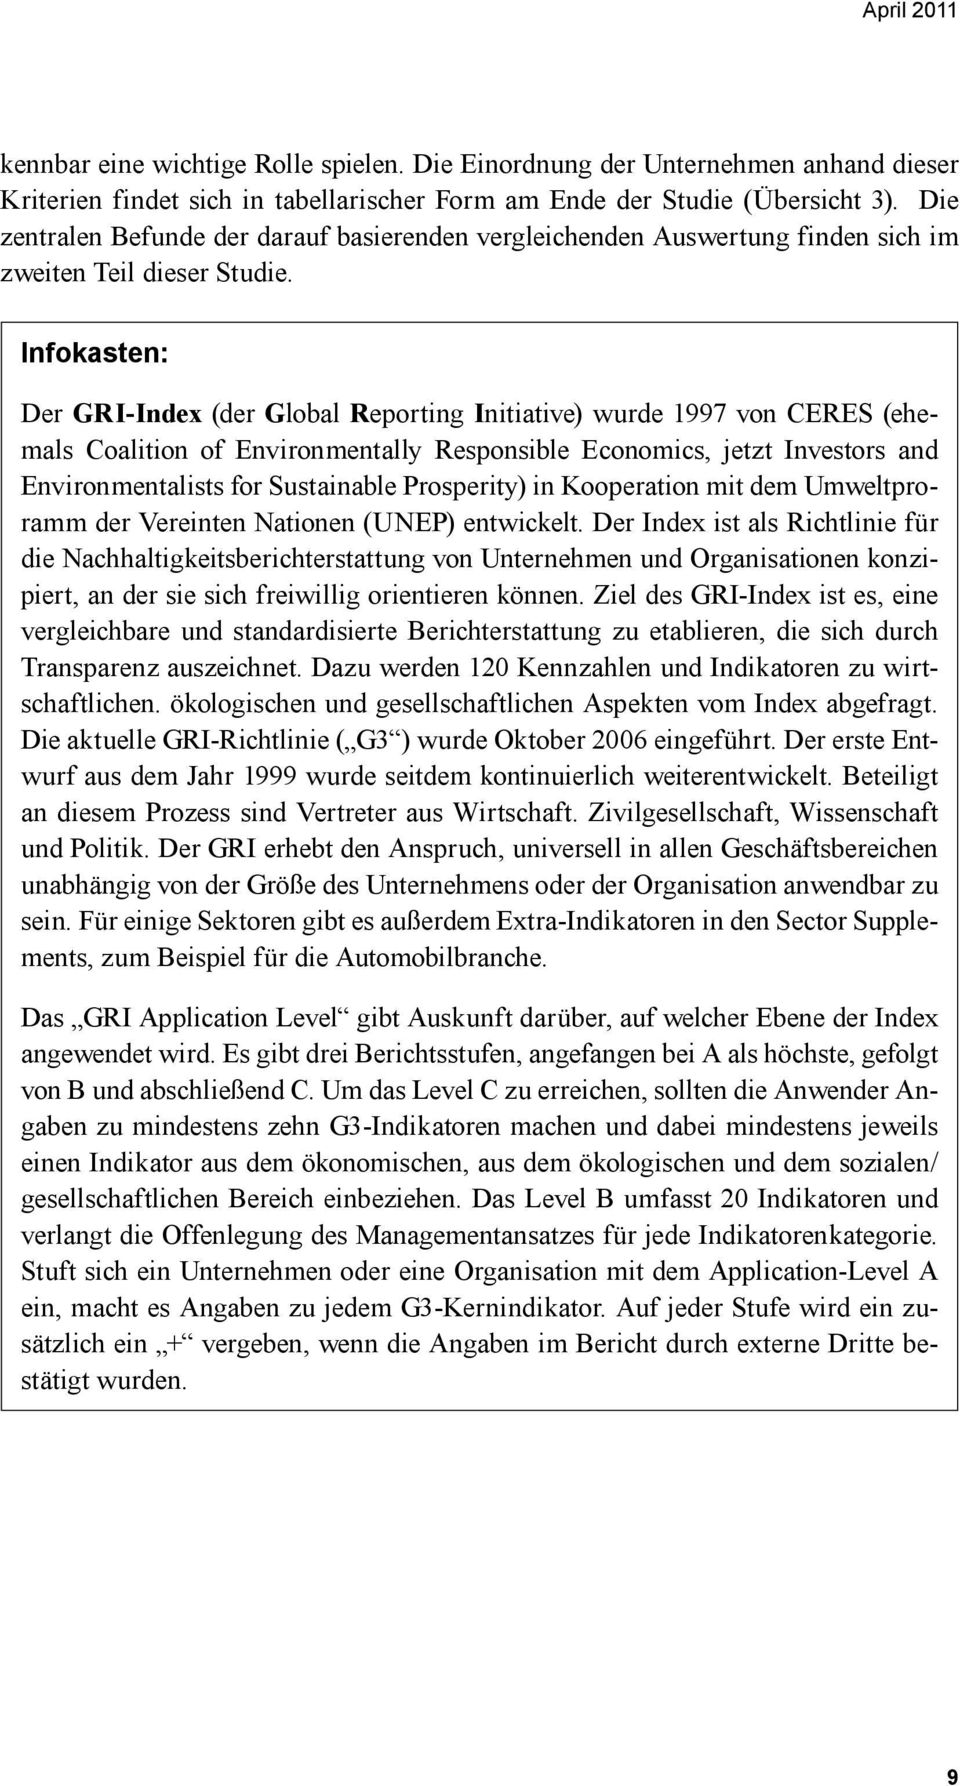 Infokasten: Der GRI-Index (der Global Reporting Initiative) wurde 1997 von CERES (ehemals Coalition of Environmentally Responsible Economics, jetzt Investors and Environmentalists for Sustainable